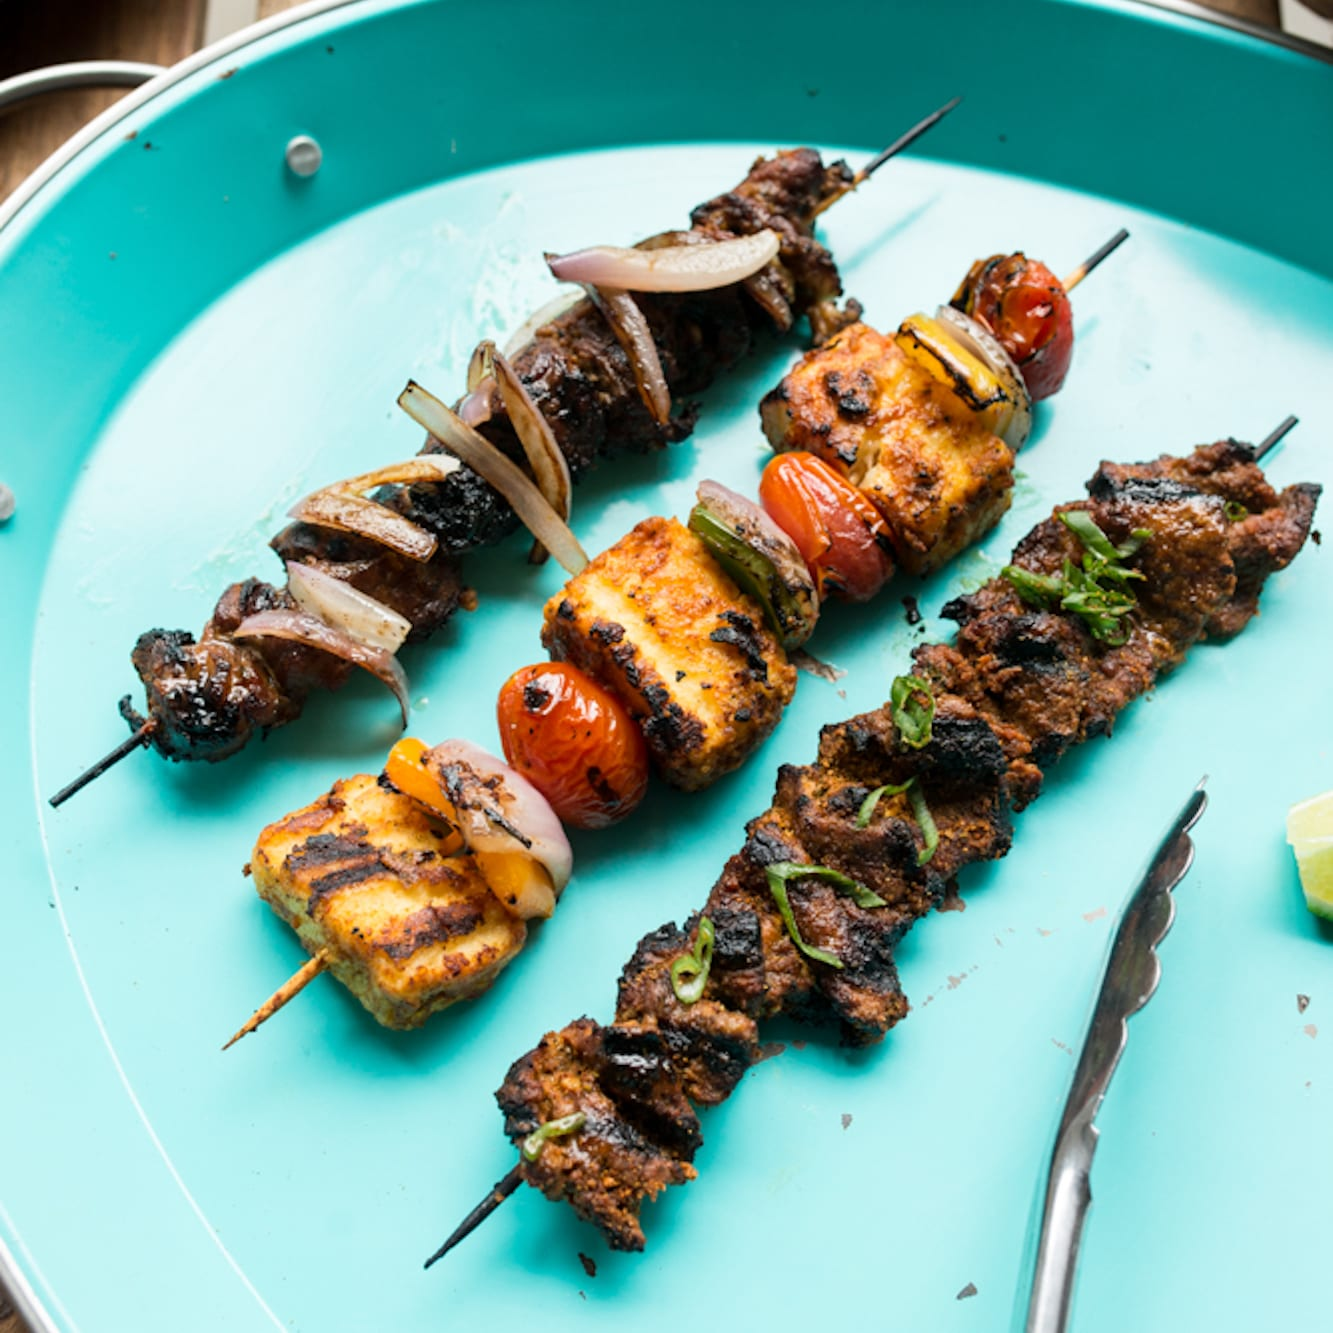 Meherwan Irani <br>Talks Kababs